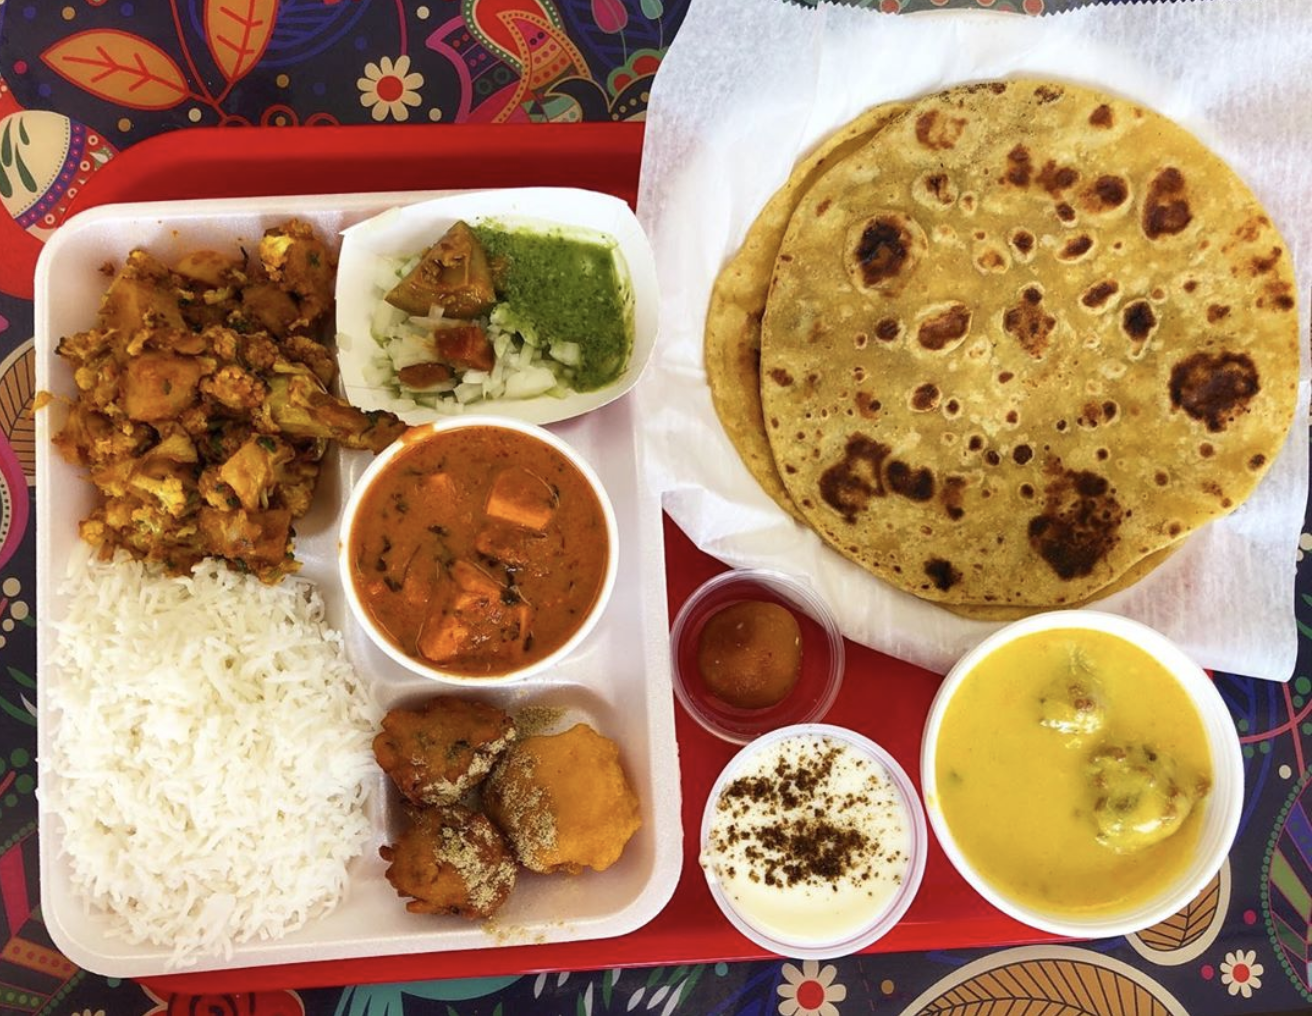 14 Best Indian Restaurants In Nyc To Try This Week